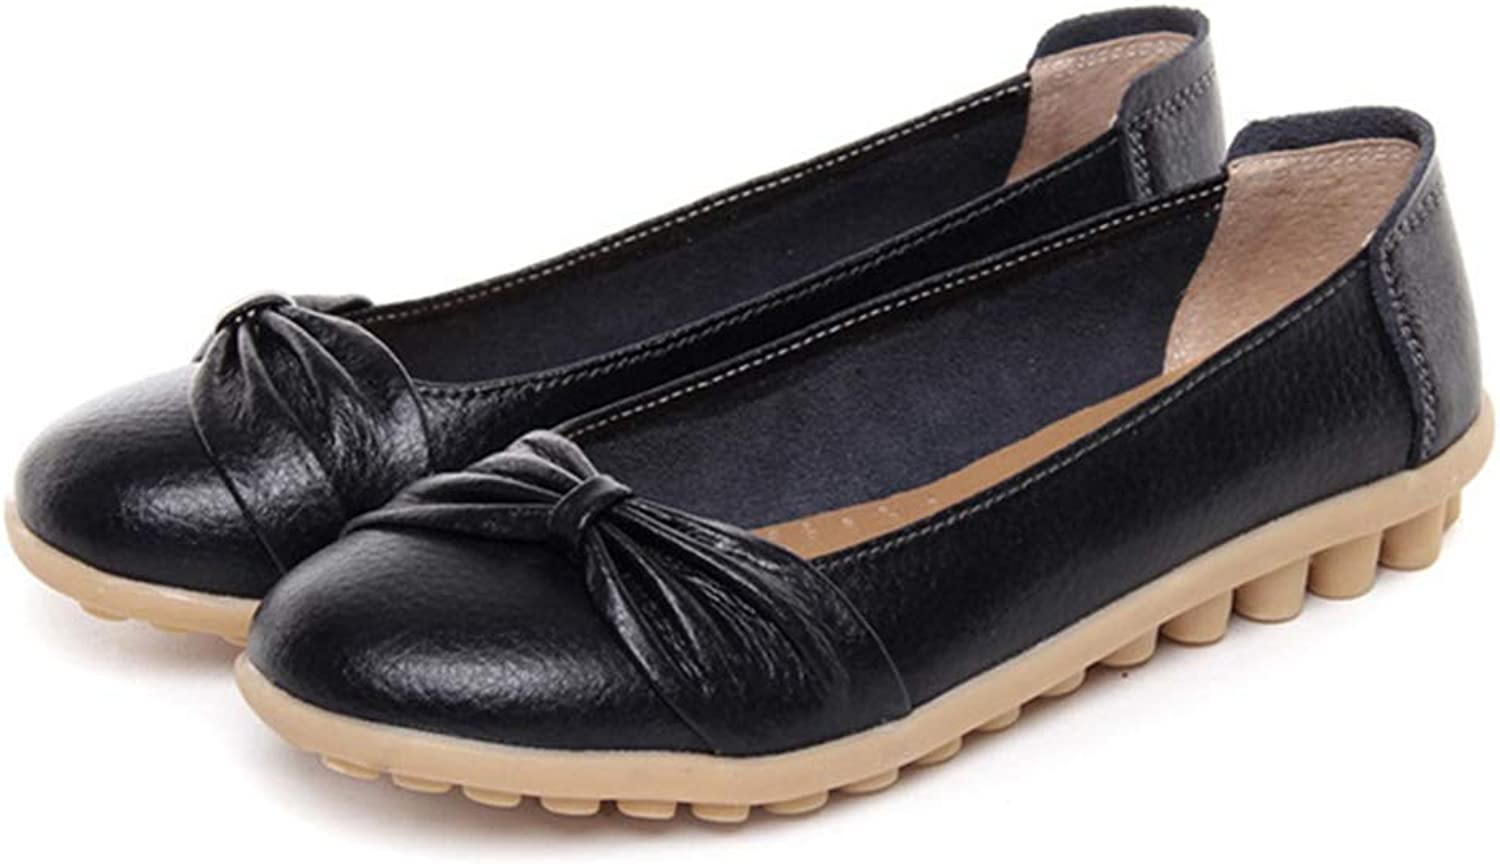 August Jim Women Loafers shoes,Cut Out Soft Leather Flats Walking shoes